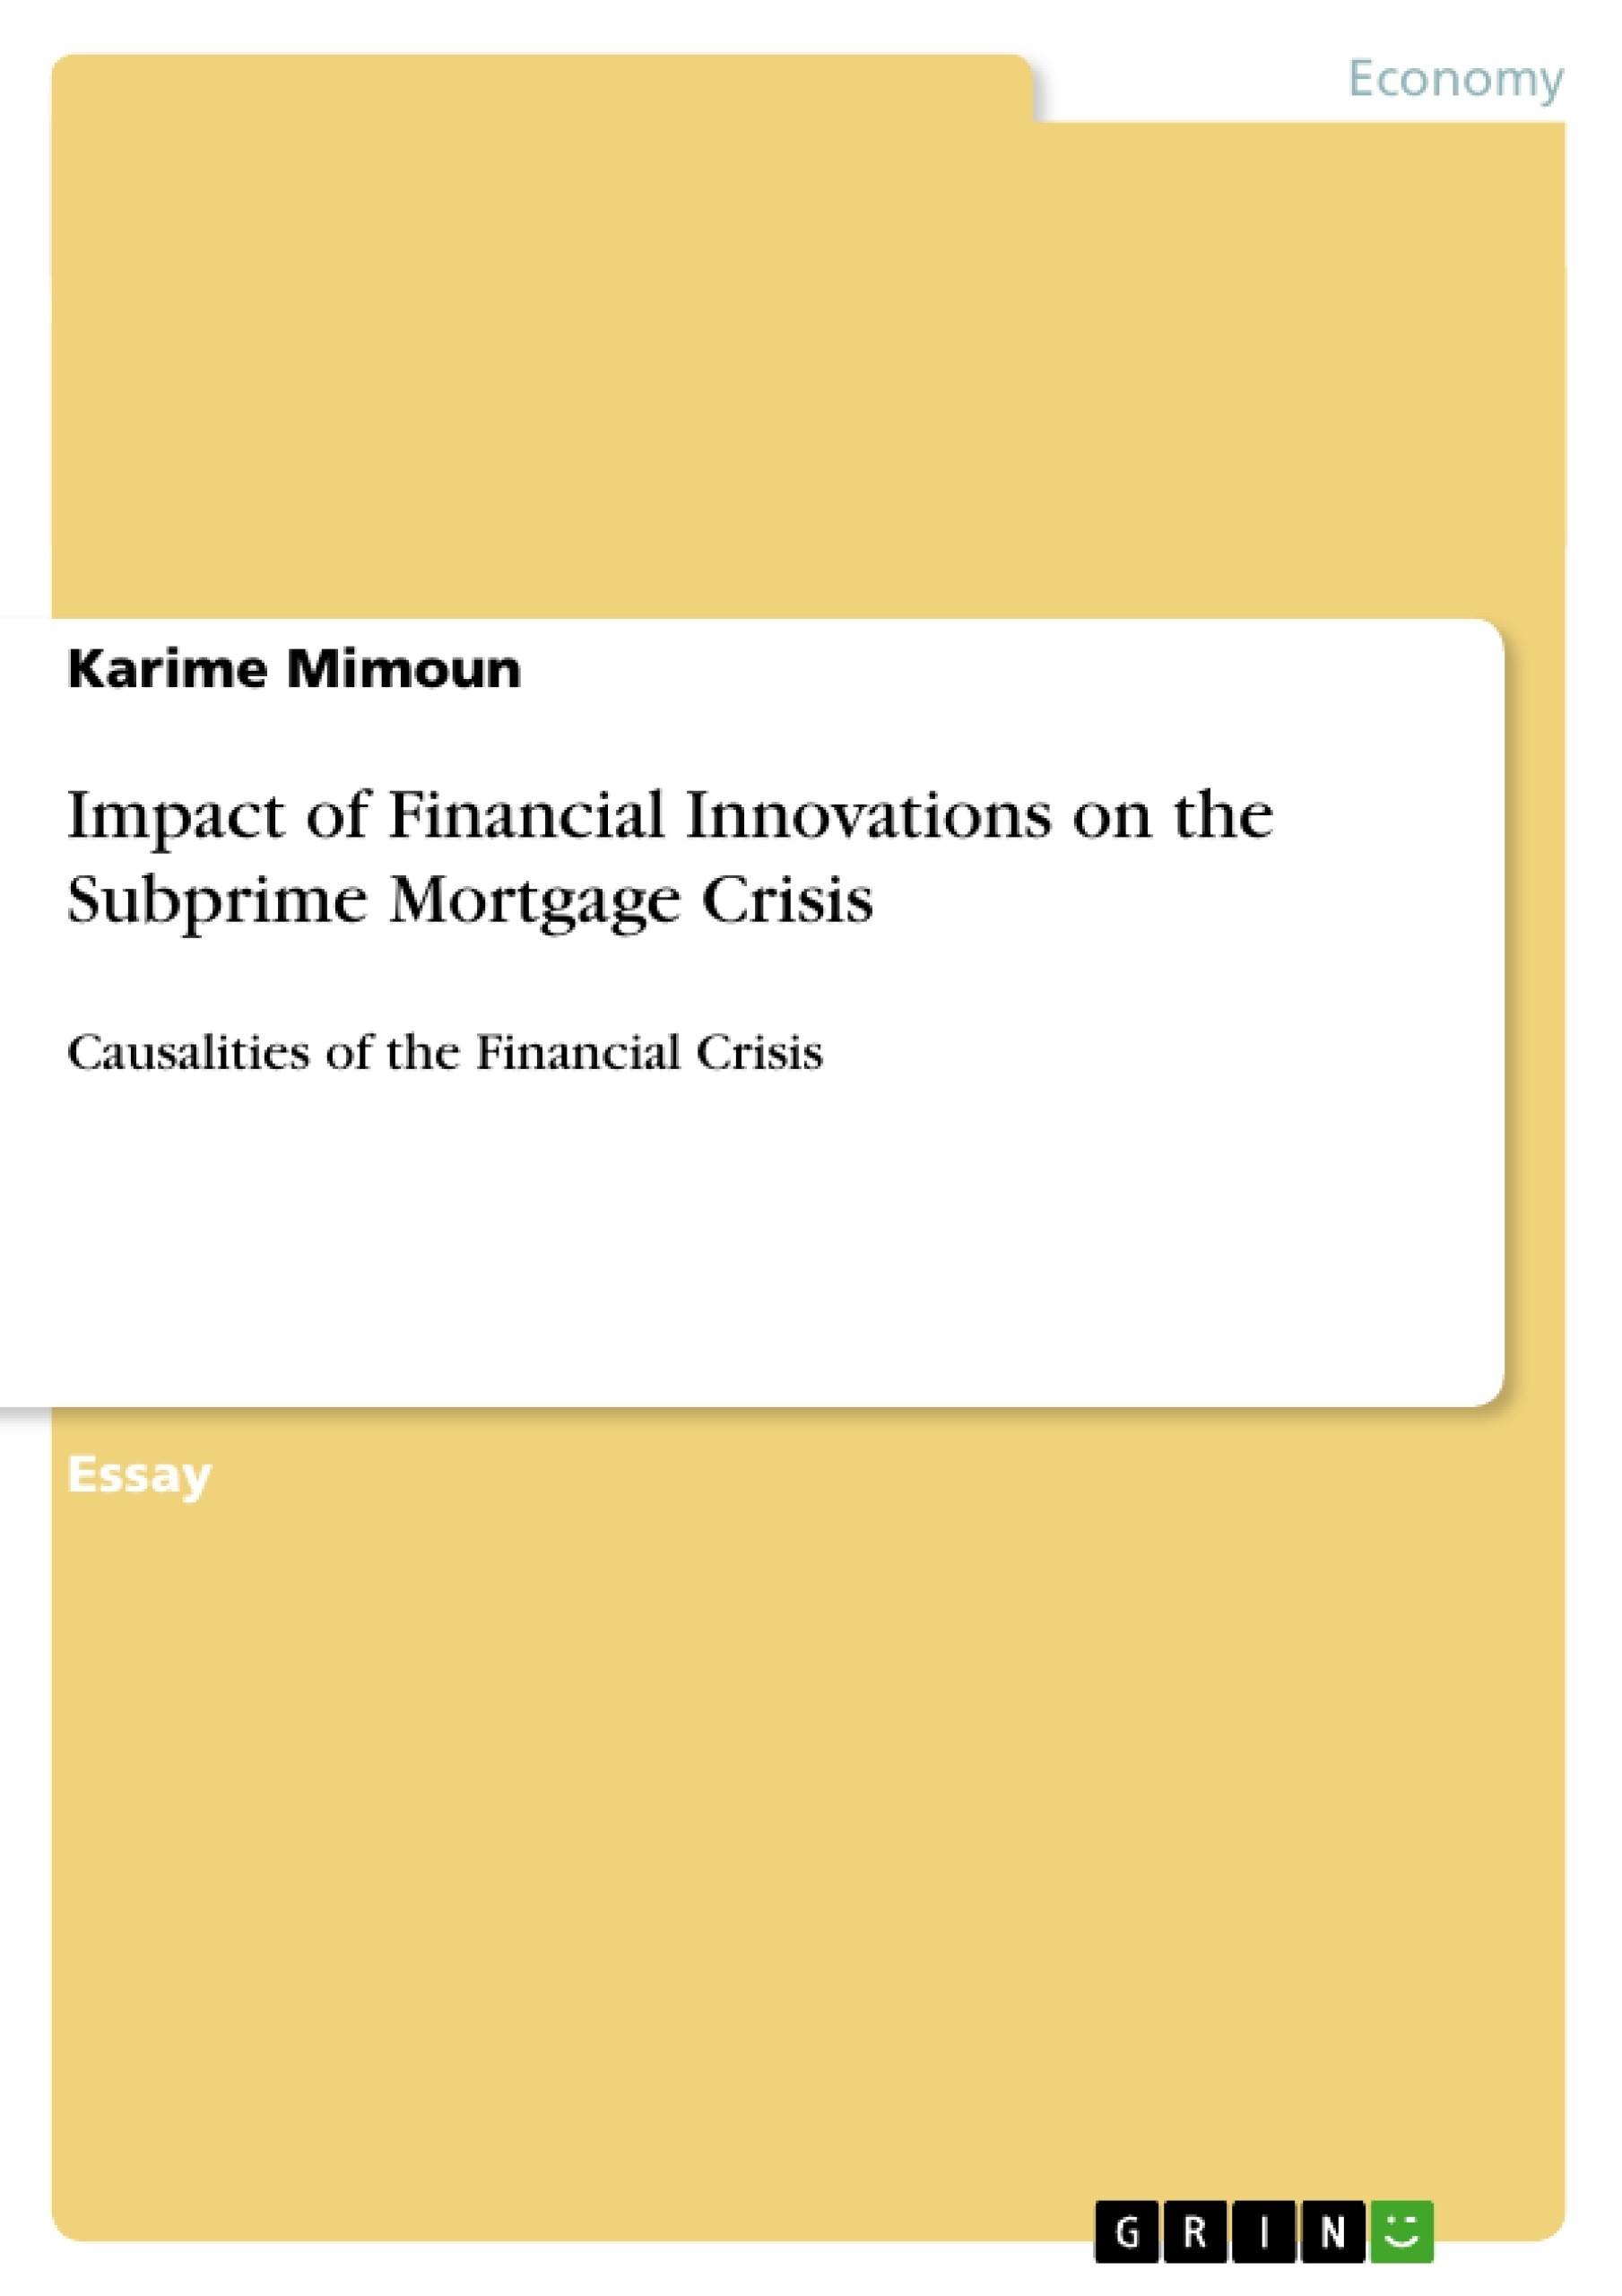 Thesis on subprime crisis